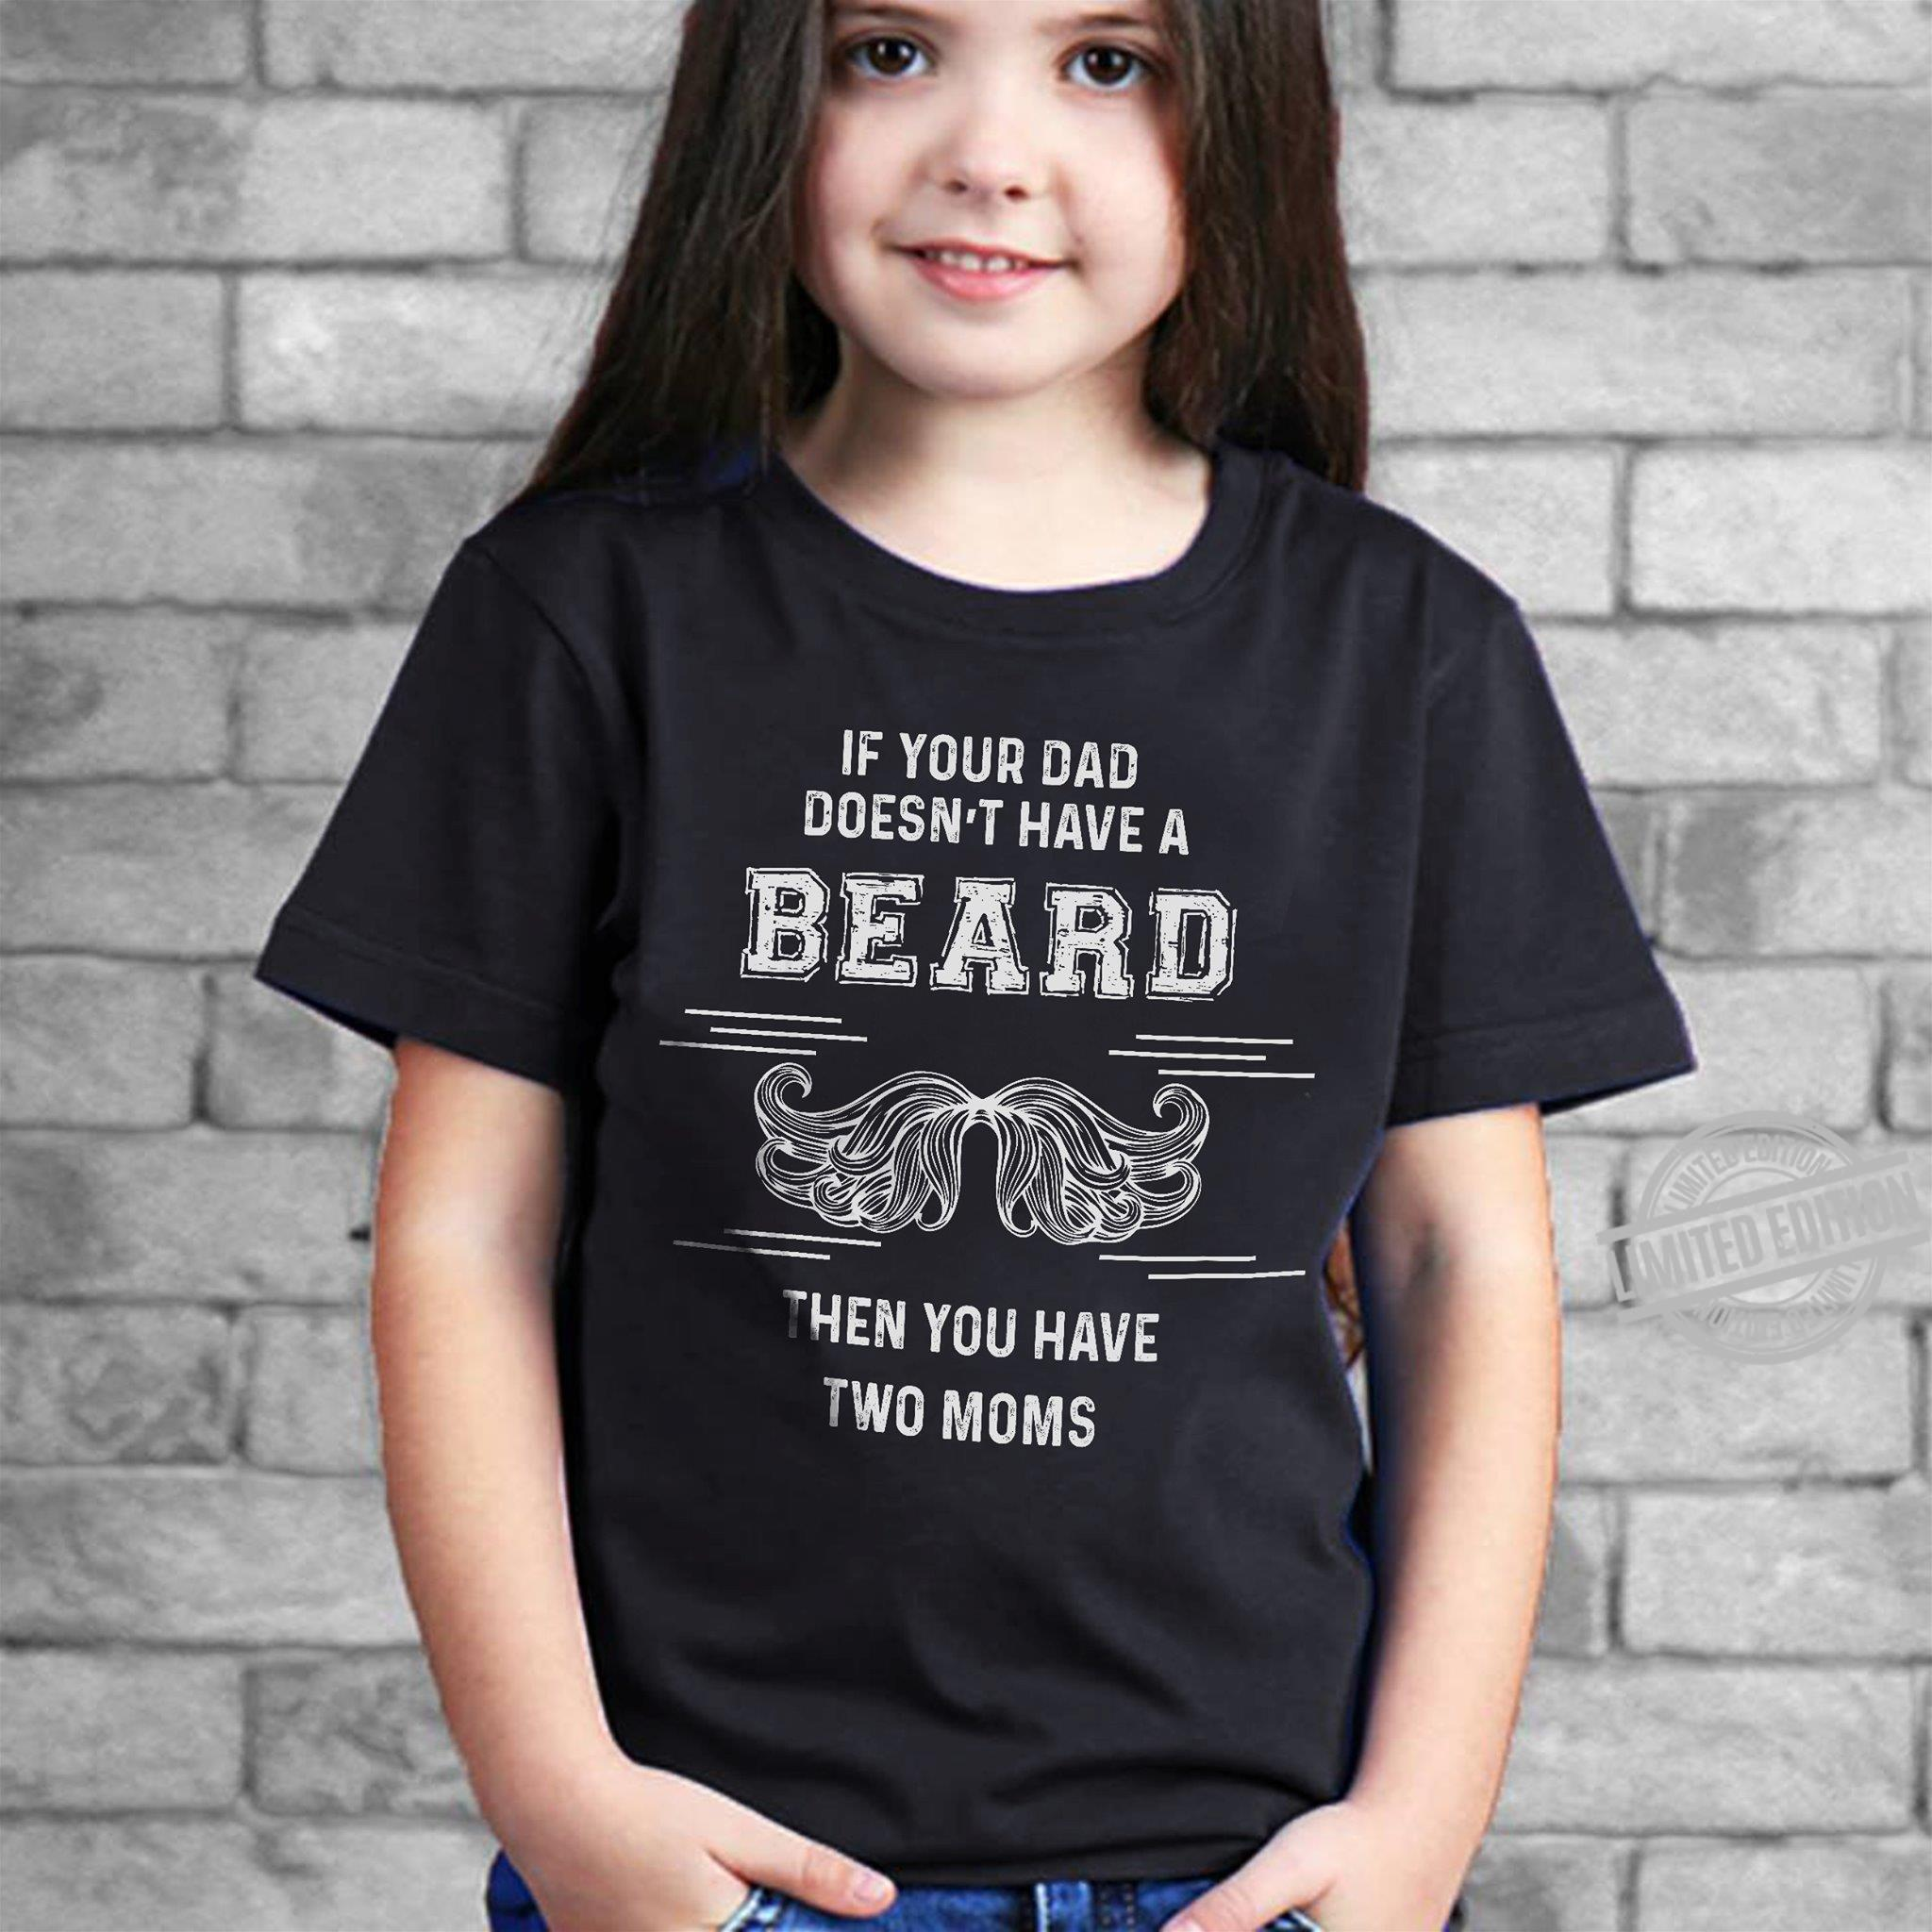 If Your Dad Doesn't Have A Beard Then You Have Two Moms Shirt